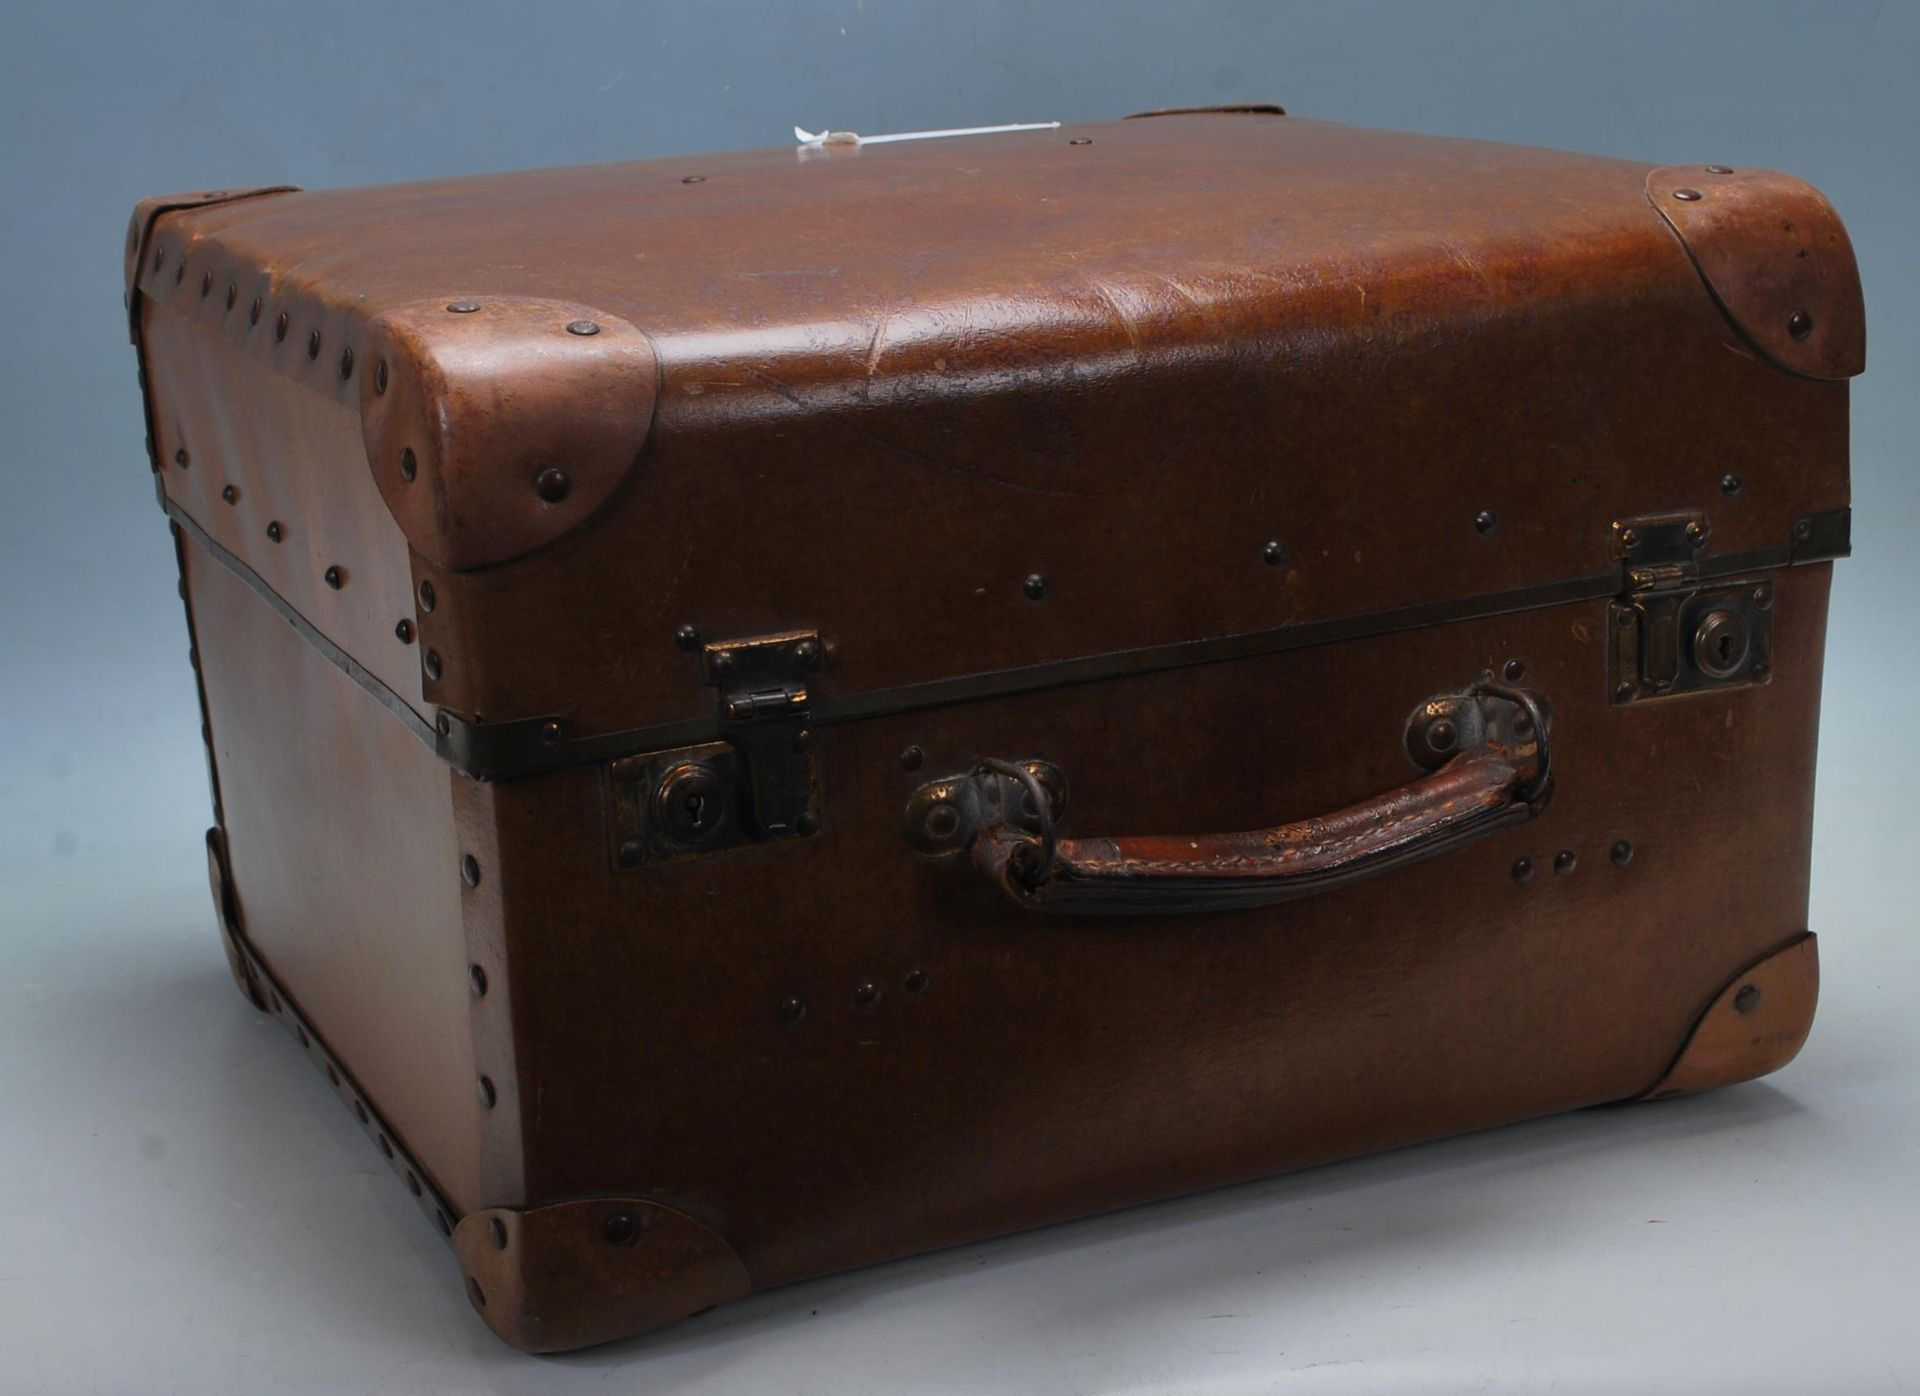 ANTIQUE EARLY 20TH CENTURY LEATHER SUITCASE